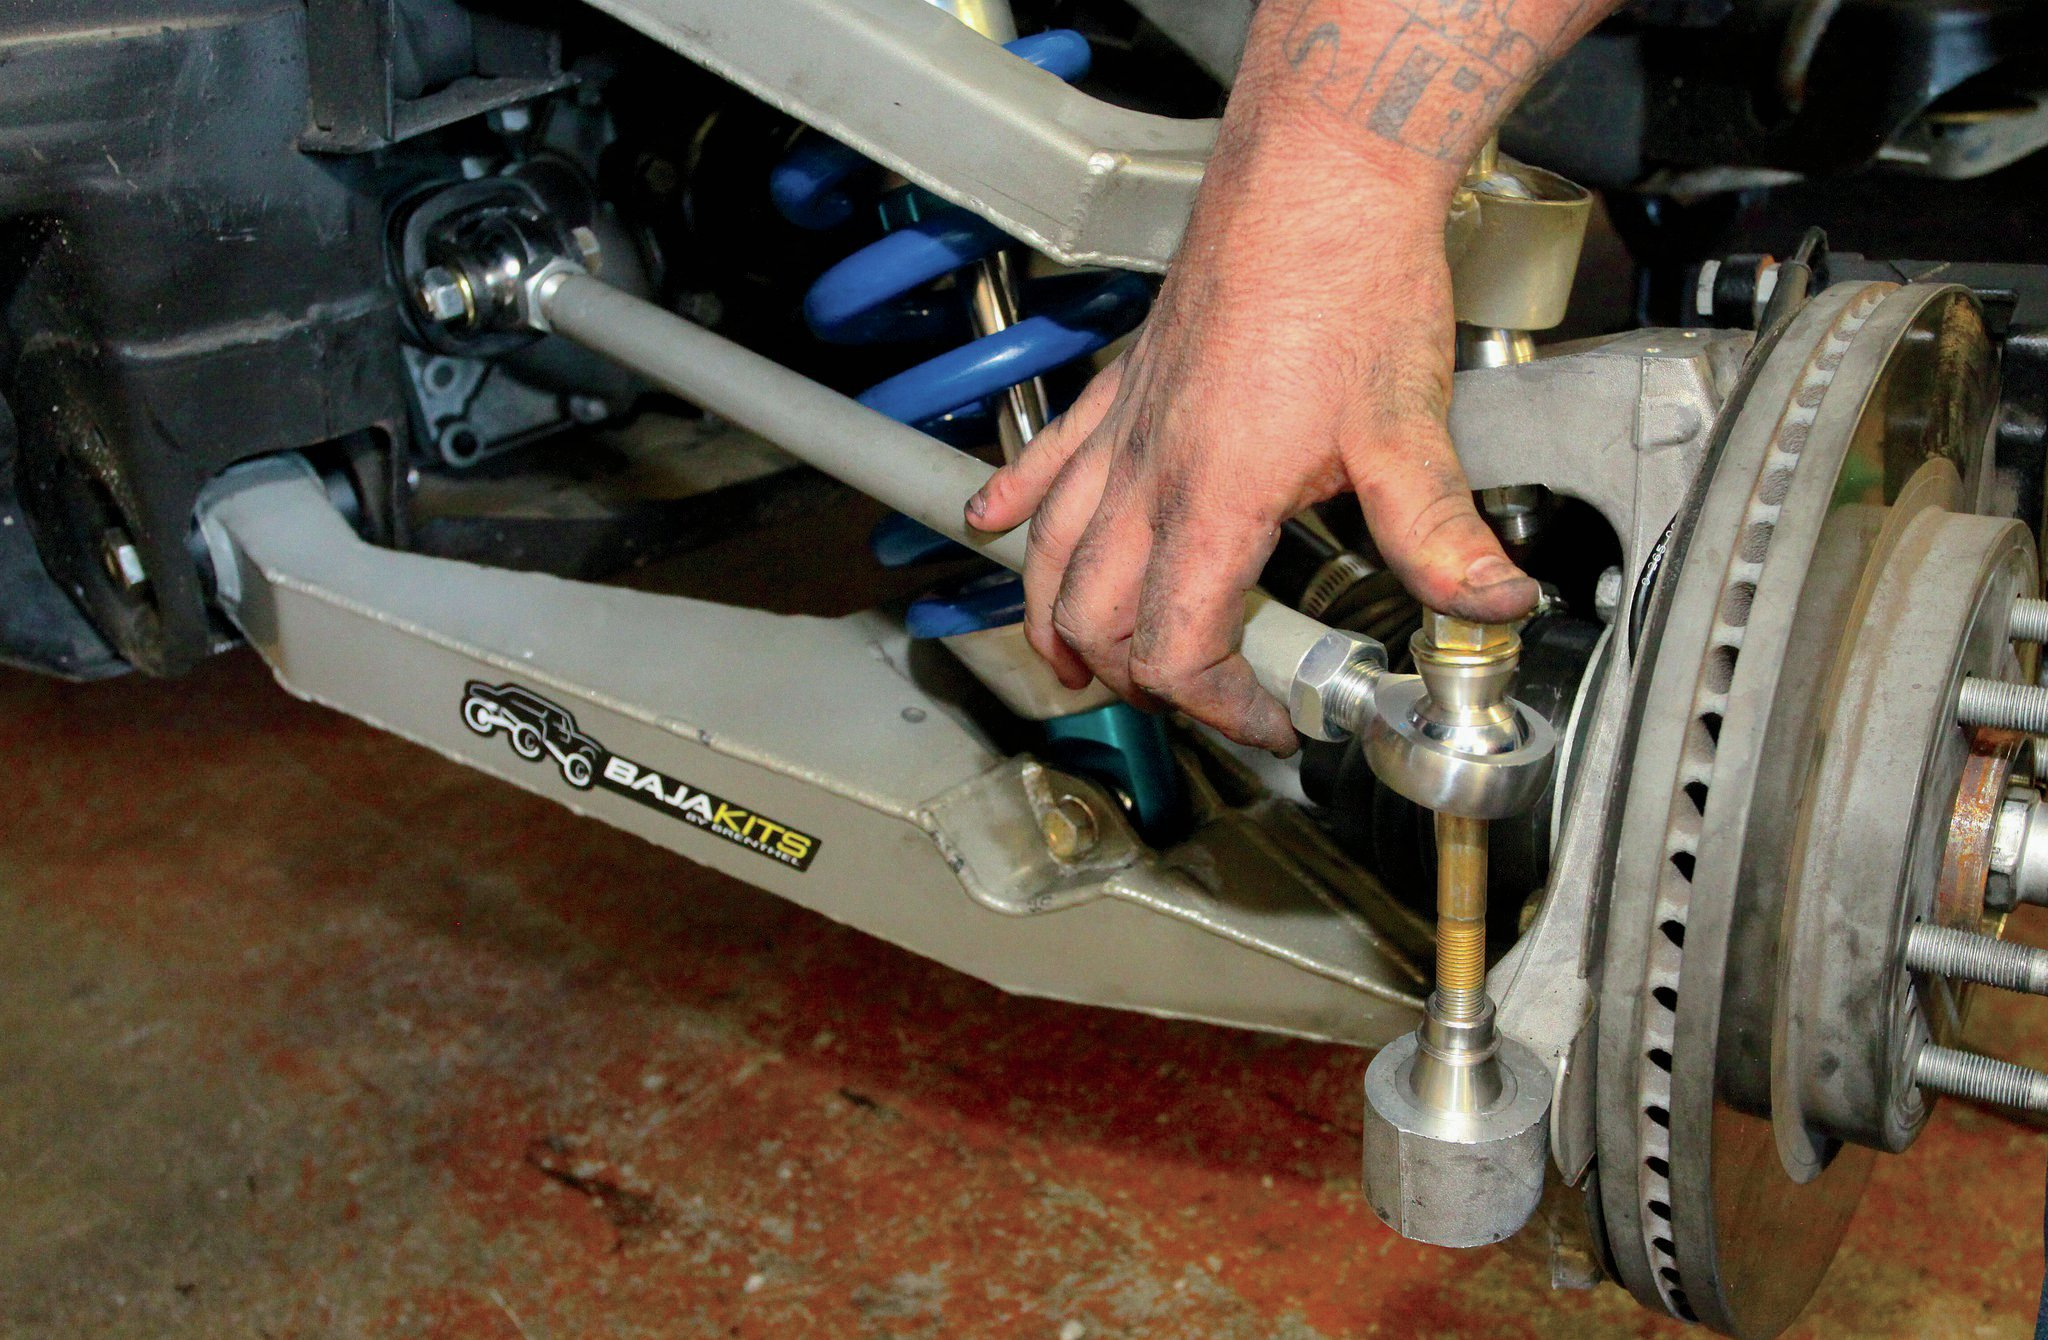 Note that an insert has been installed into the knuckle. It's into this that the Heim joint–equipped tie-rod end is installed.